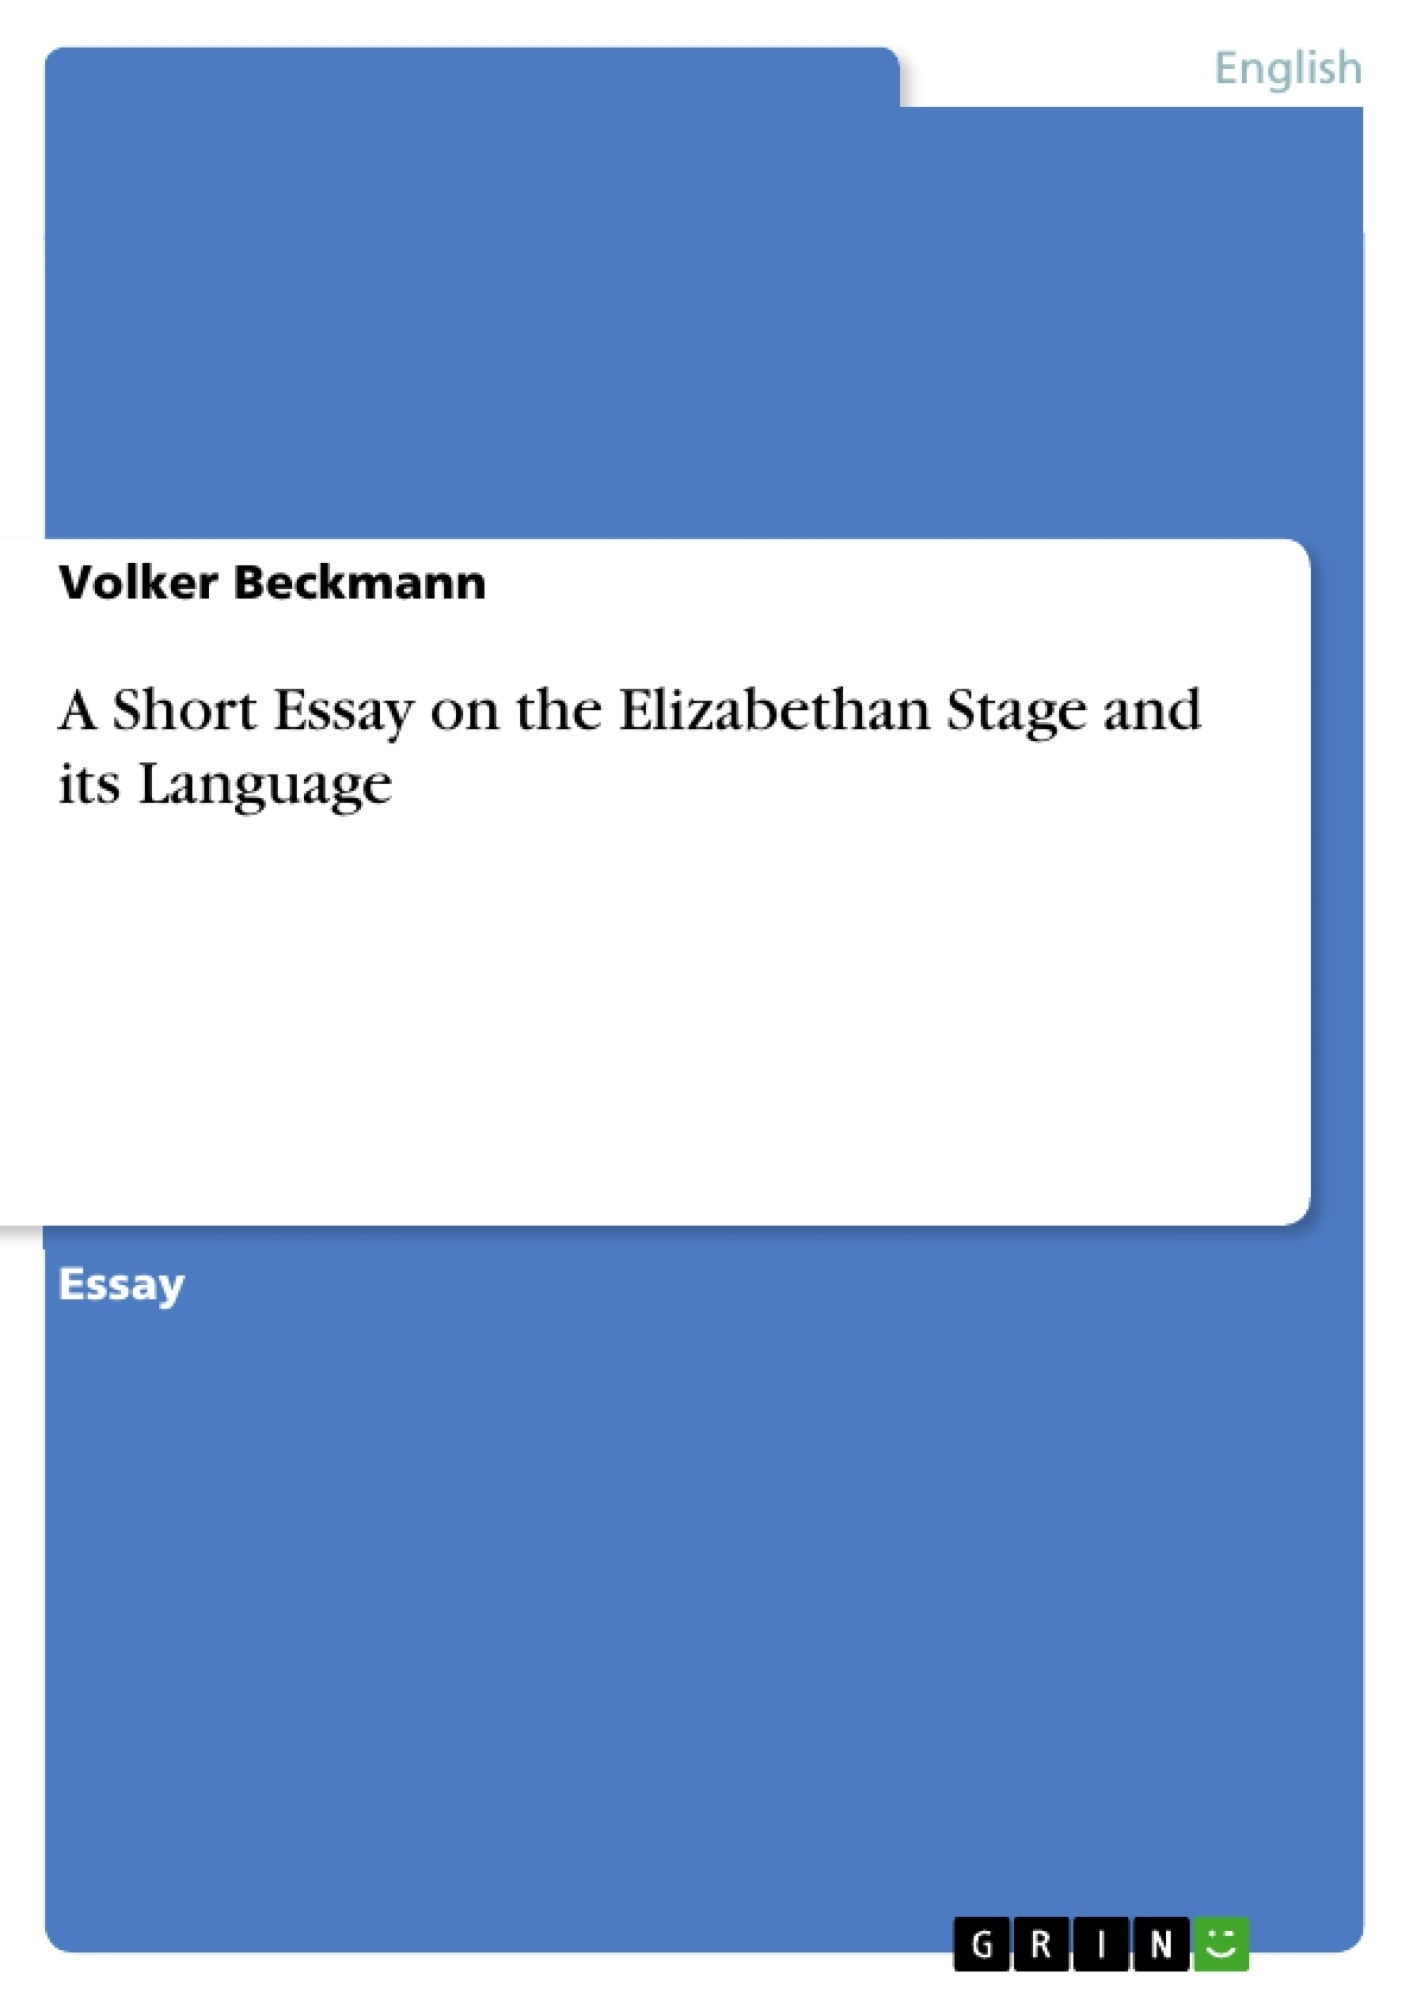 Title: A Short Essay on the Elizabethan Stage and its Language